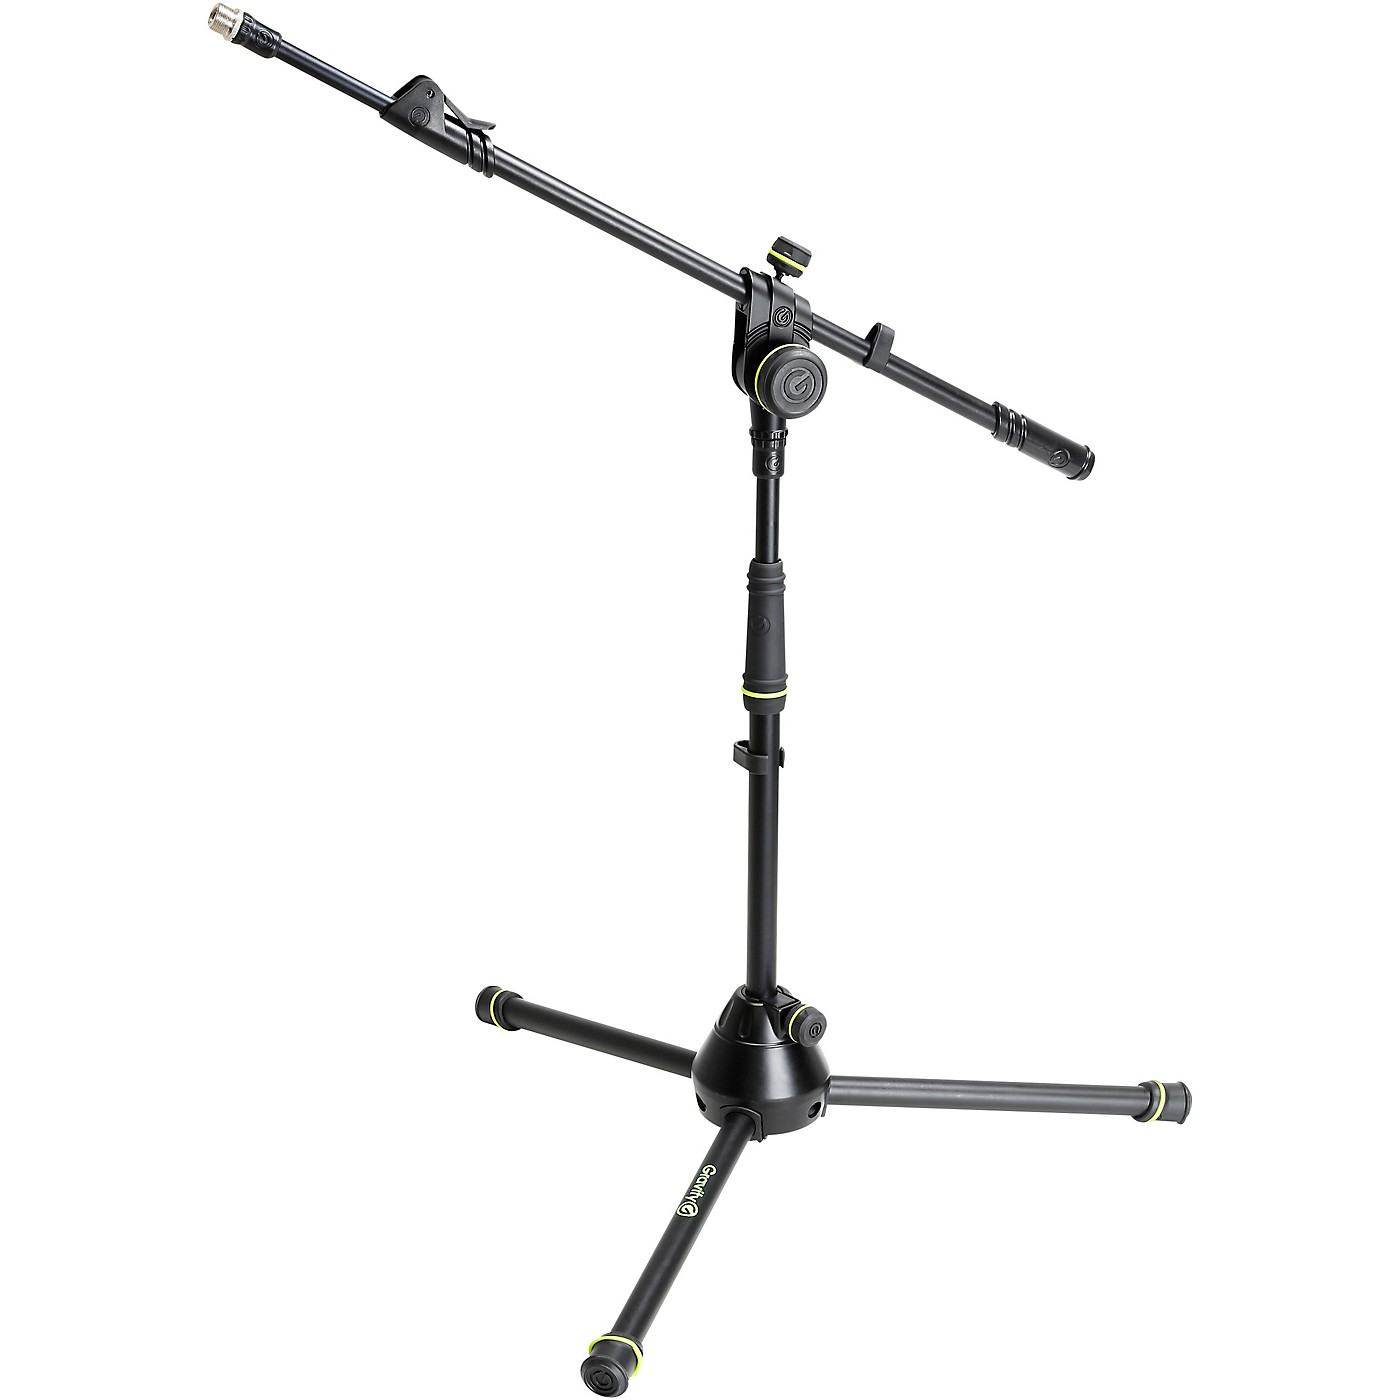 Gravity Stands Microphone Stand With Folding Tripod Base And 2-Point Adjustment Telescoping Boom Short thumbnail